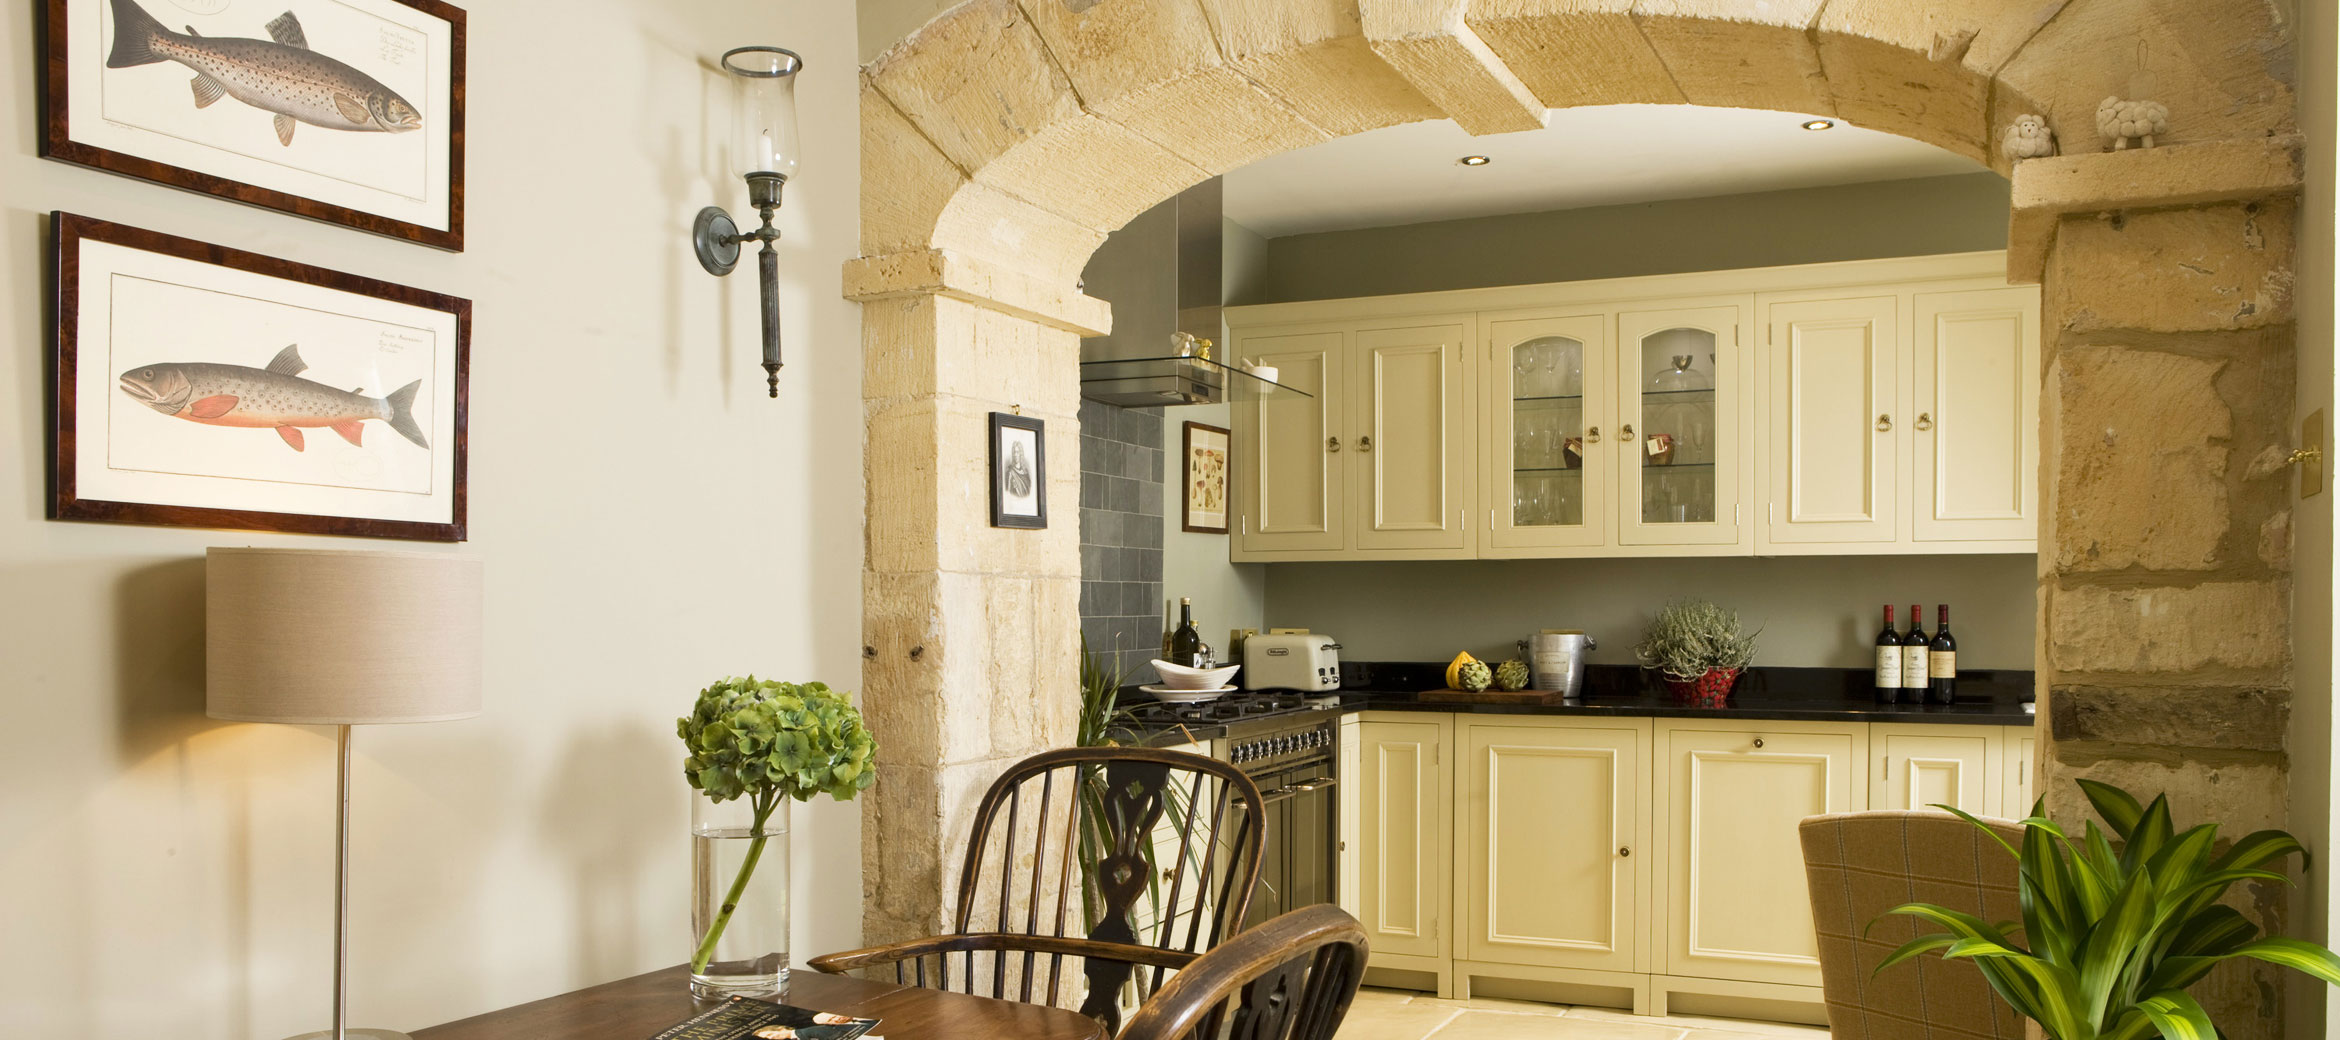 Singer-House-chipping-campden-breakfast-room